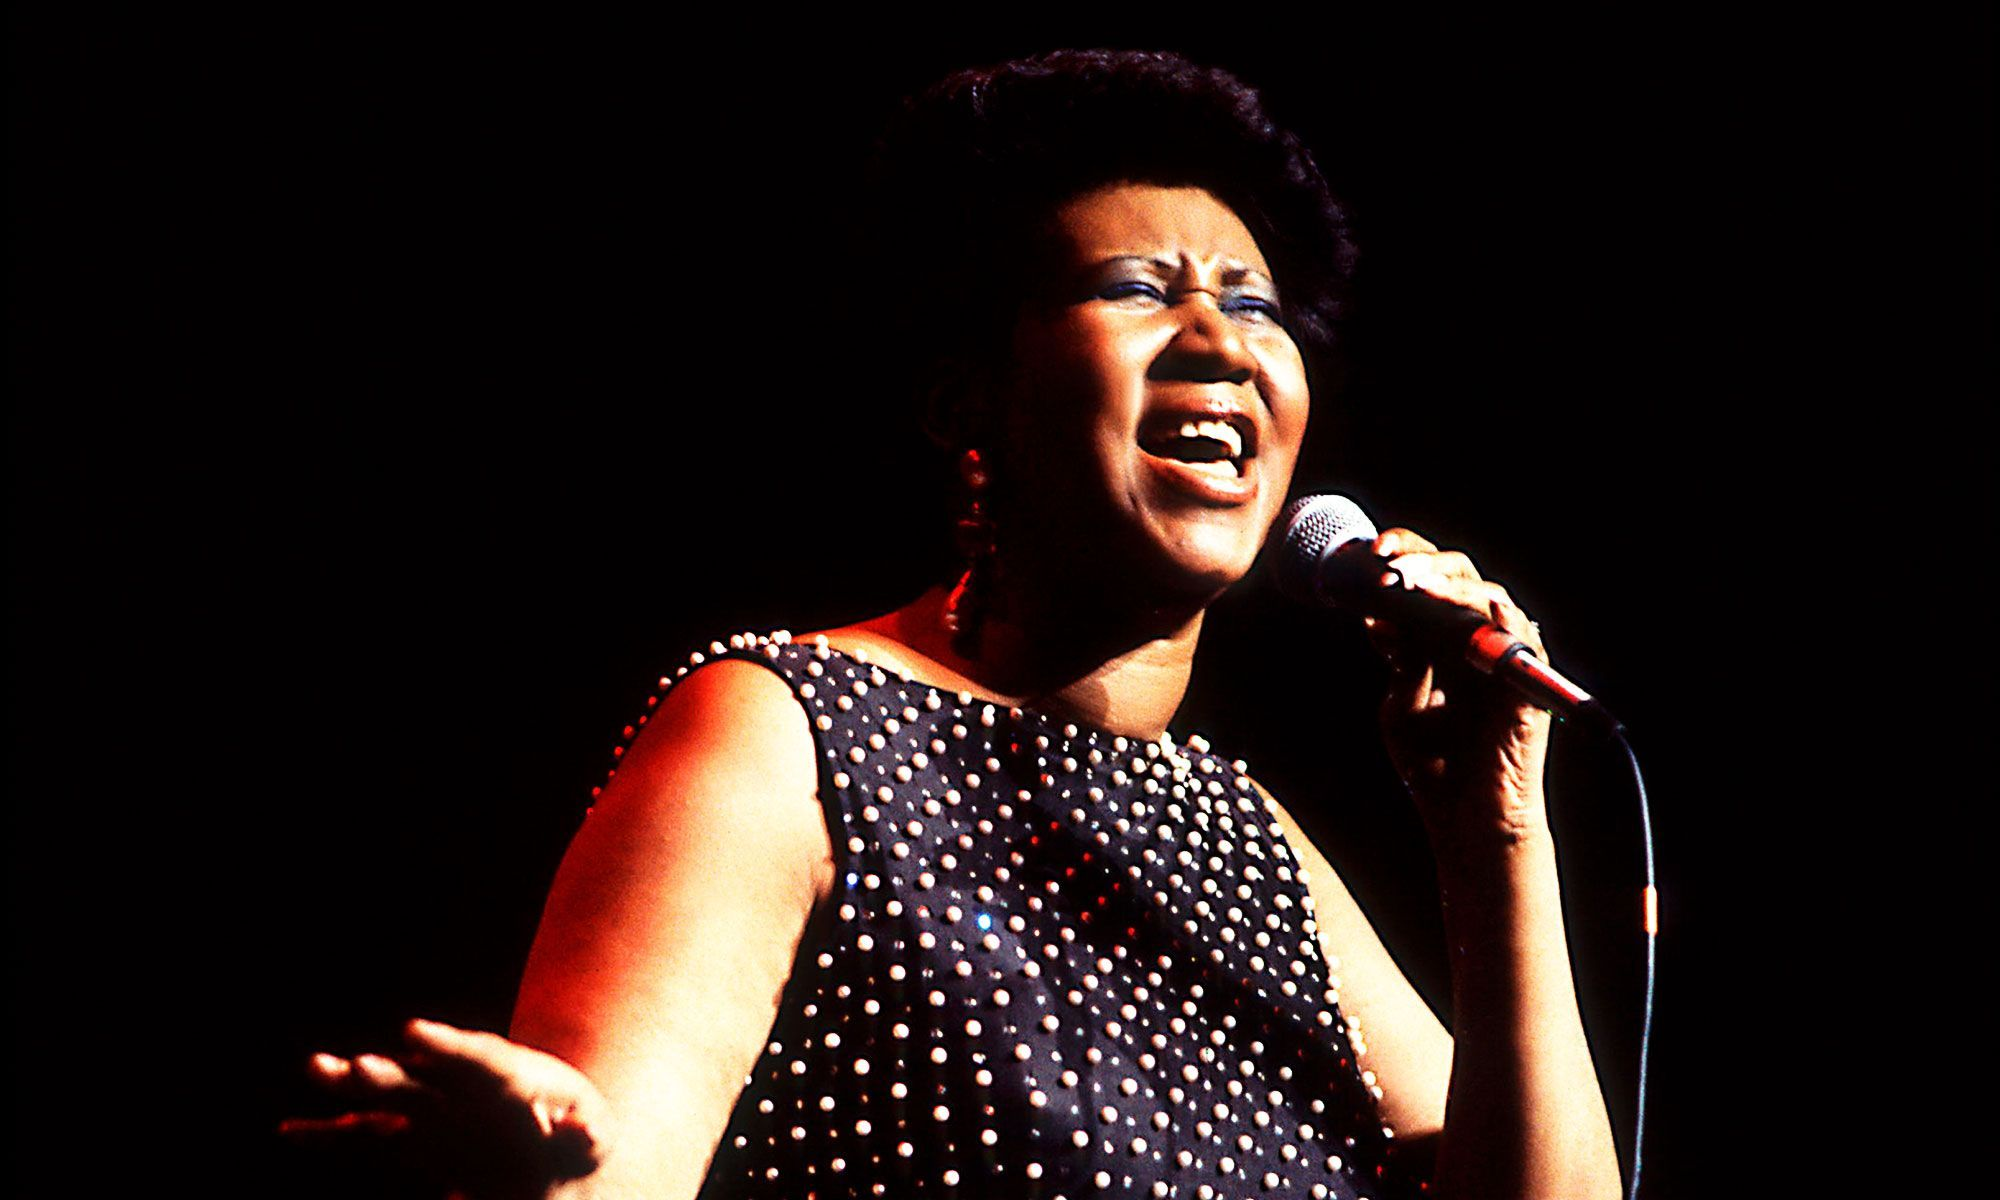 Aretha S Greatest Albums Who S Zoomin Who 1985 Great Albums